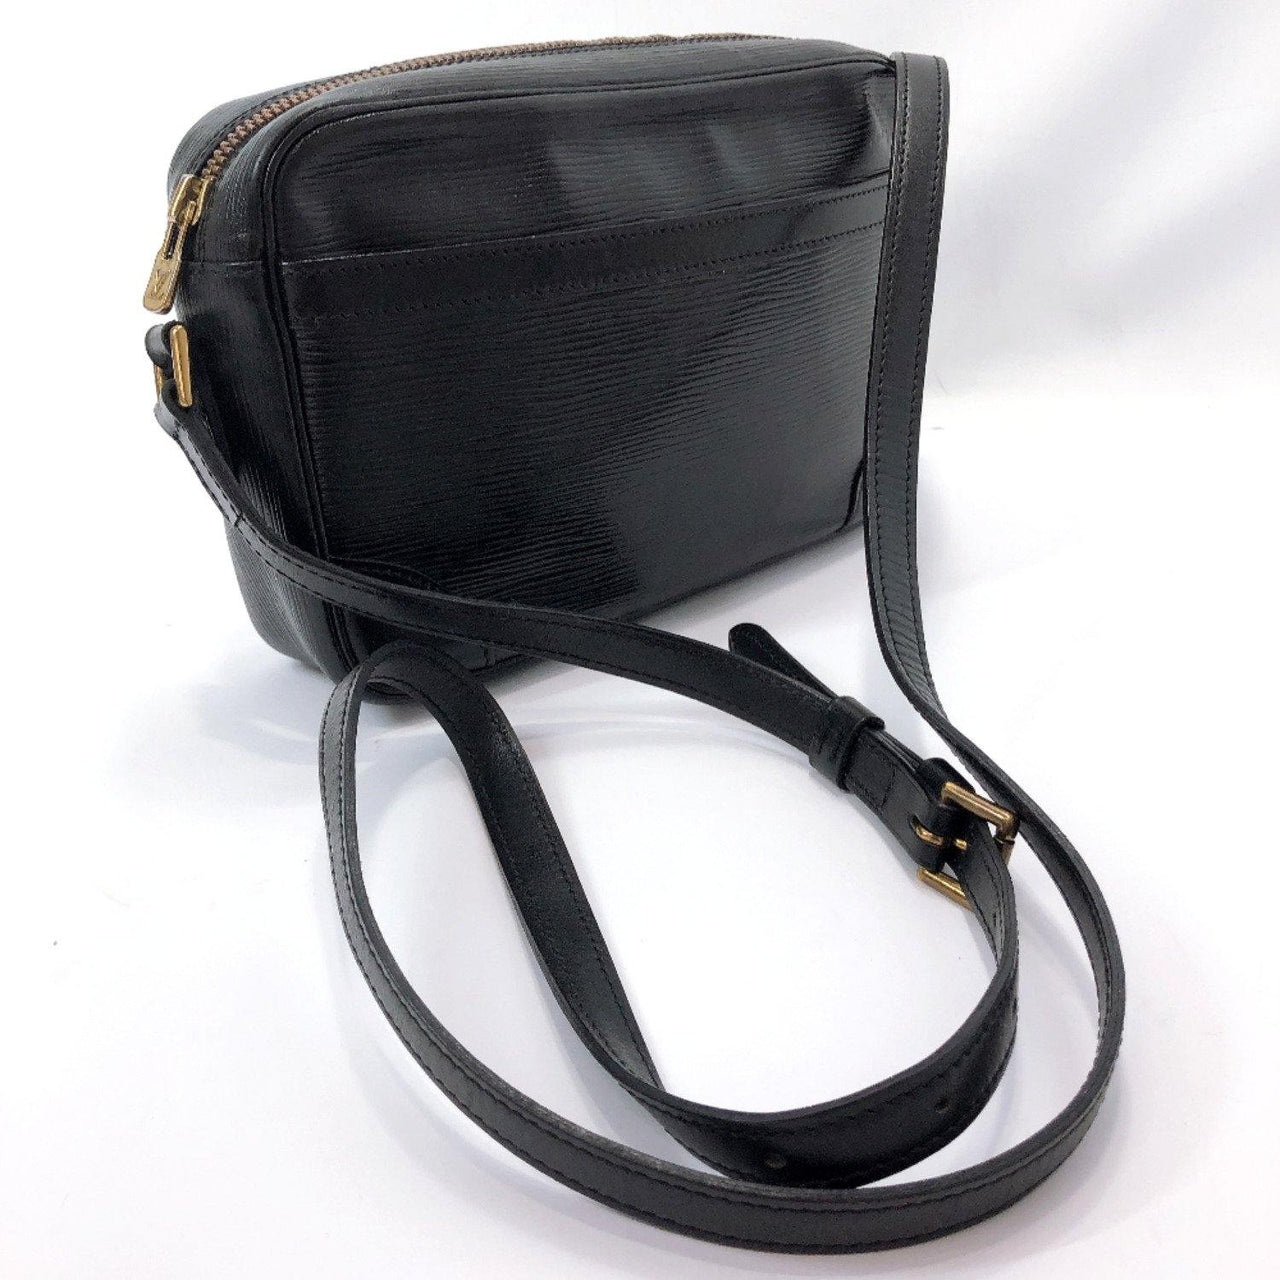 LOUIS VUITTON Shoulder Bag M52312 Trocadero 24 Epi Leather black Women Used